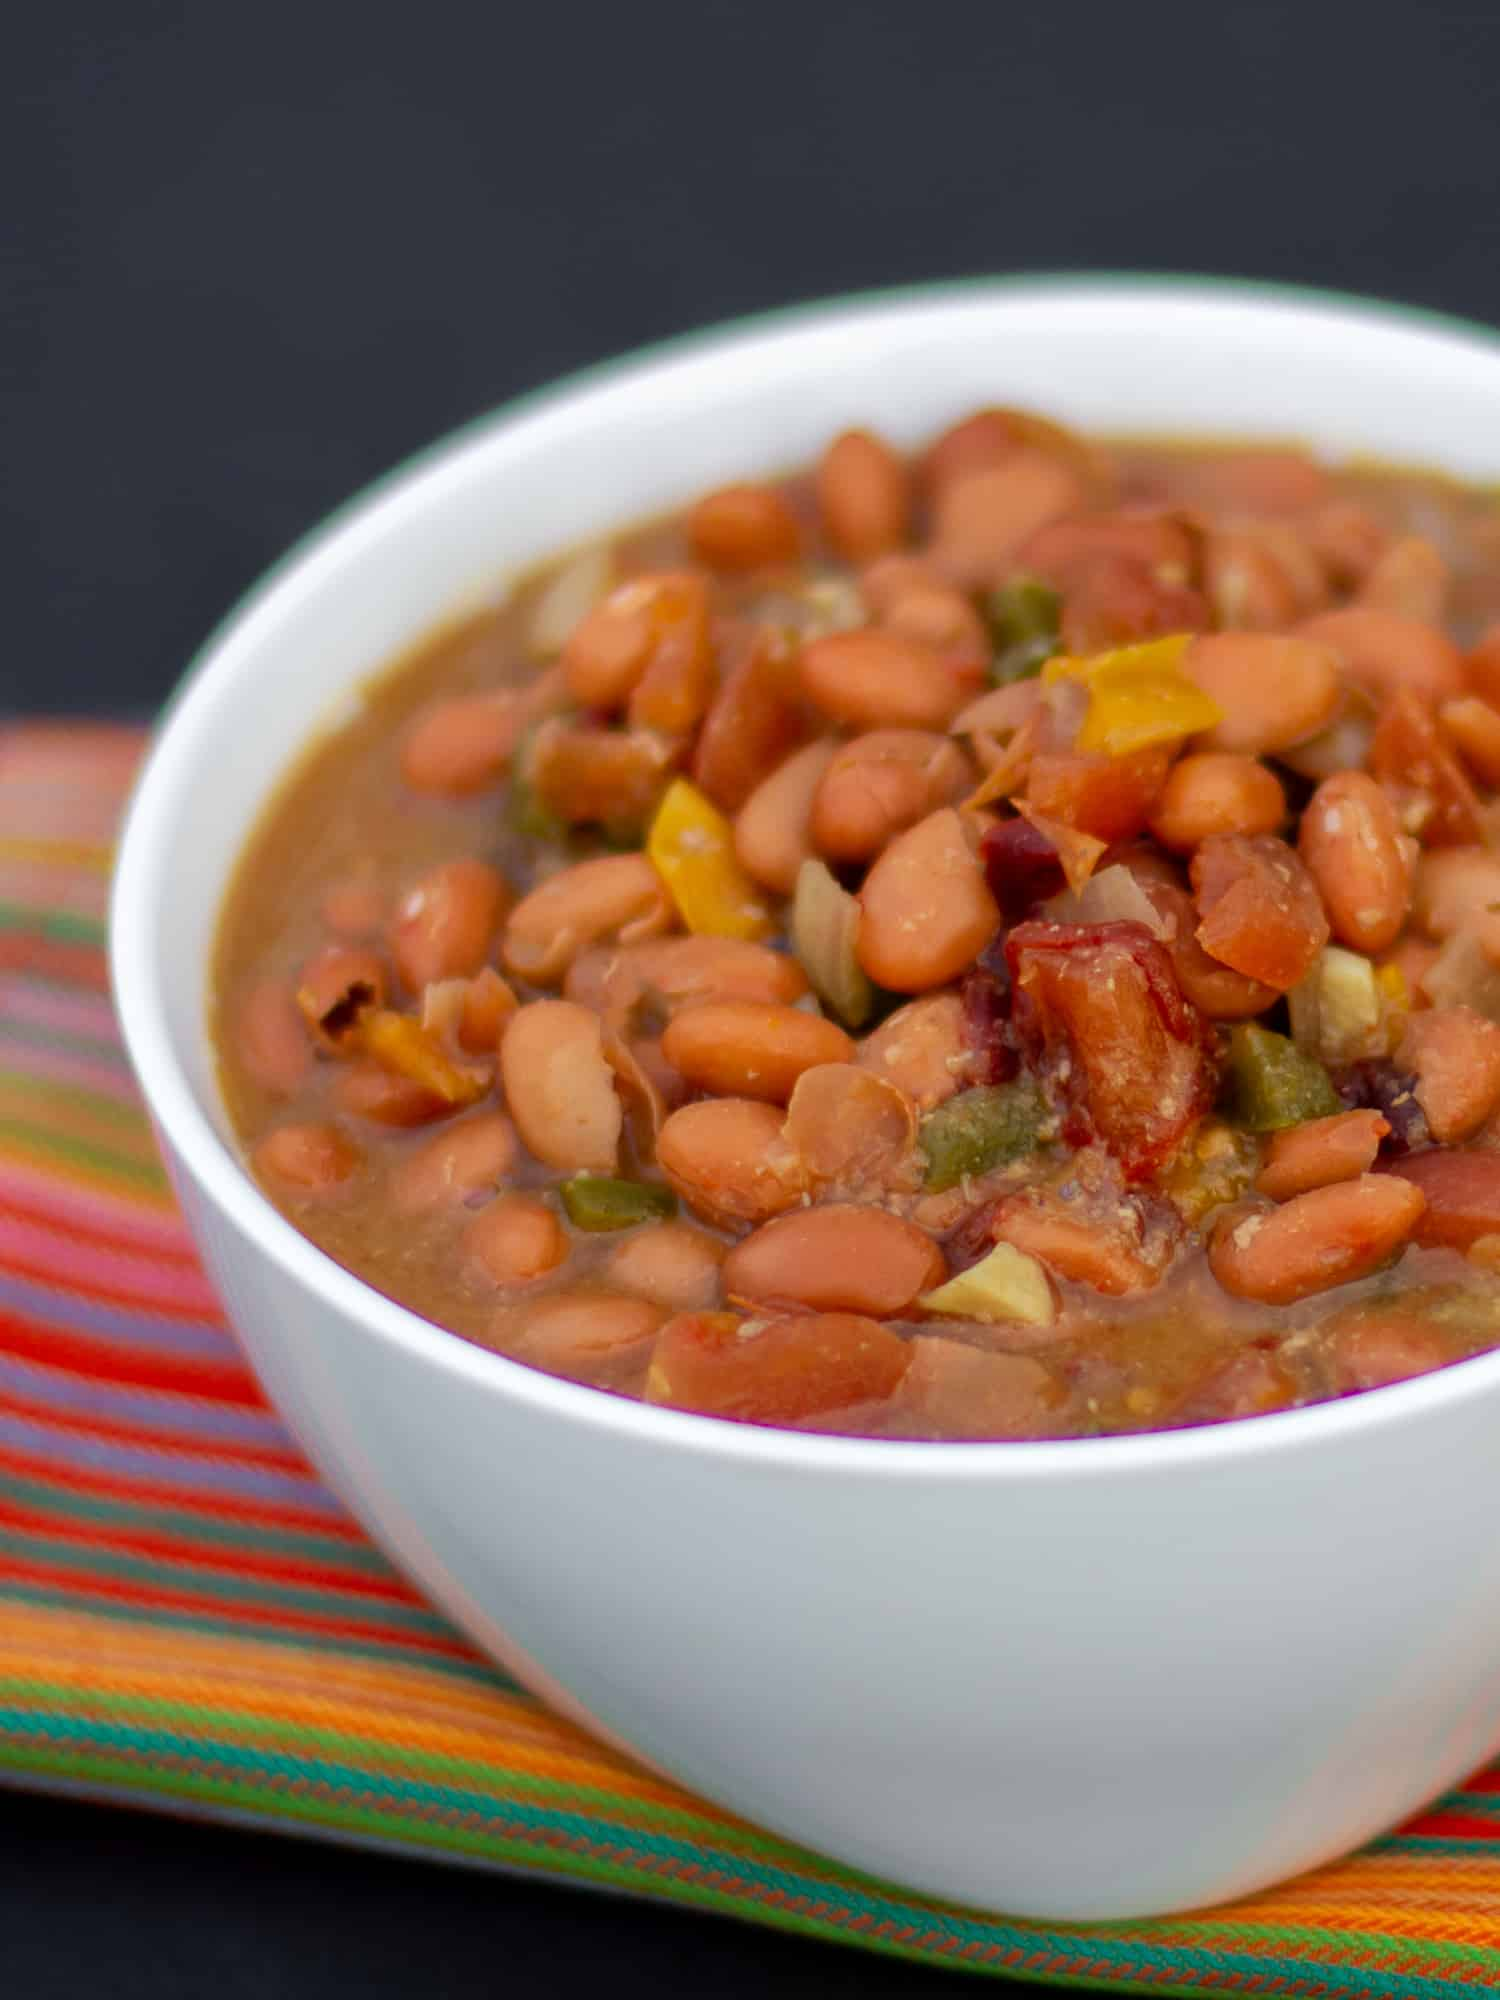 Slow cooked pinto beans with ham hock, tomato, onion, jalapeno and ancho chilies. Amazing tex-mex / Mexican comfort food baked bean recipe made in a Crock Pot.